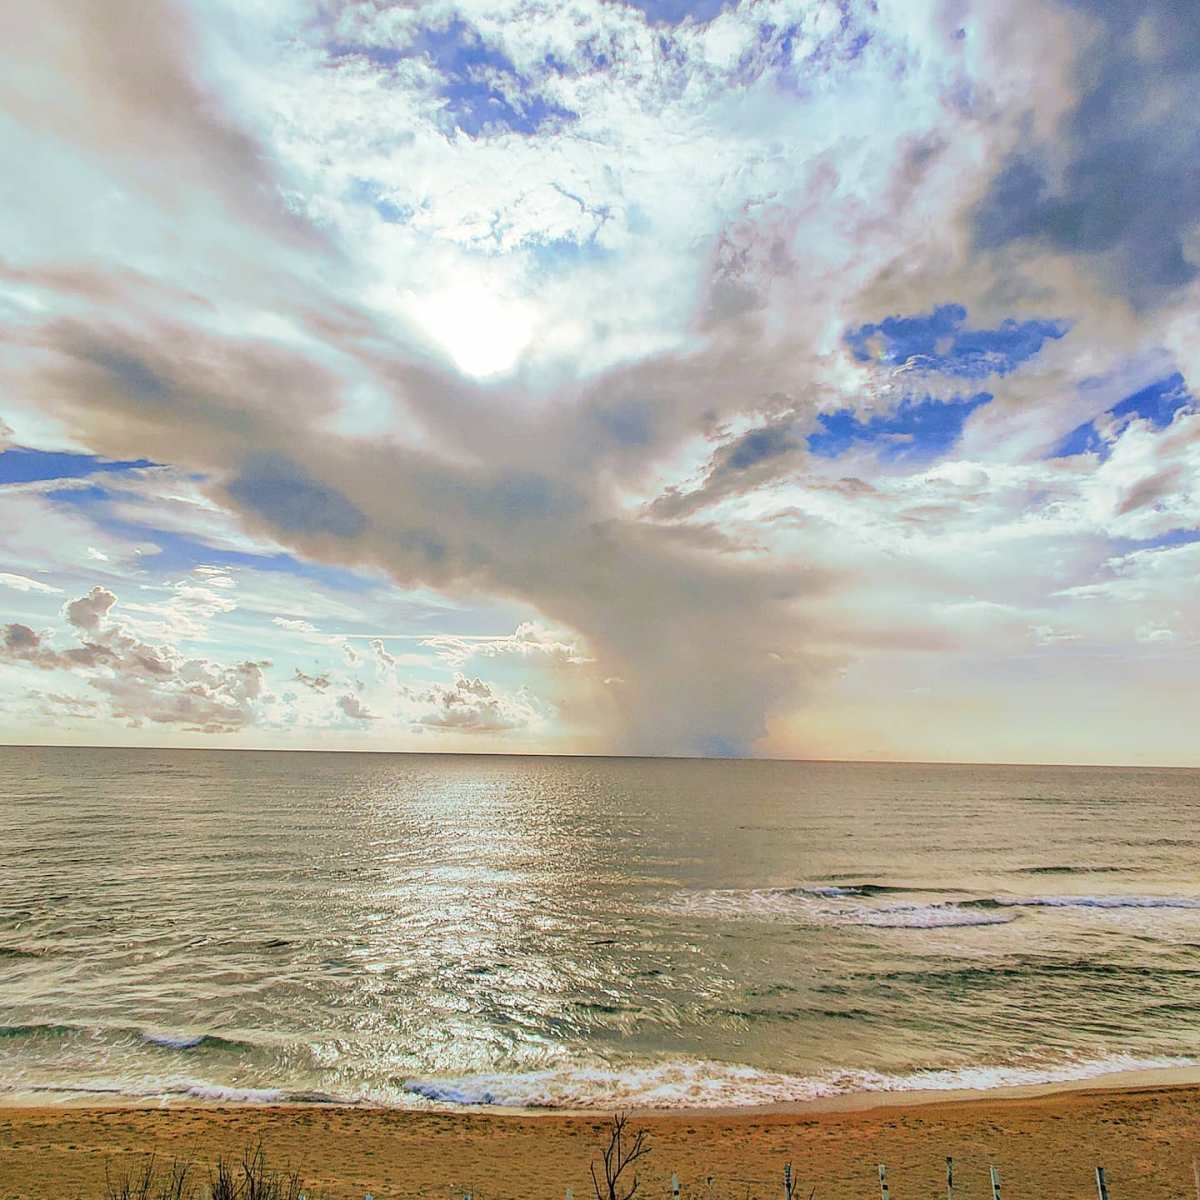 Just before the storm 🌬️🌤️#sabaudia #spiaggia #nuvole #sand #sealife #blue #sea #traveller #travellife #travelgram #traveler #beach #reflection #wind #cloudscape #travelphotography #seaview #seaside #travelholic #travelstoke #travel #beachlife #traveling #travelphoto #clouds